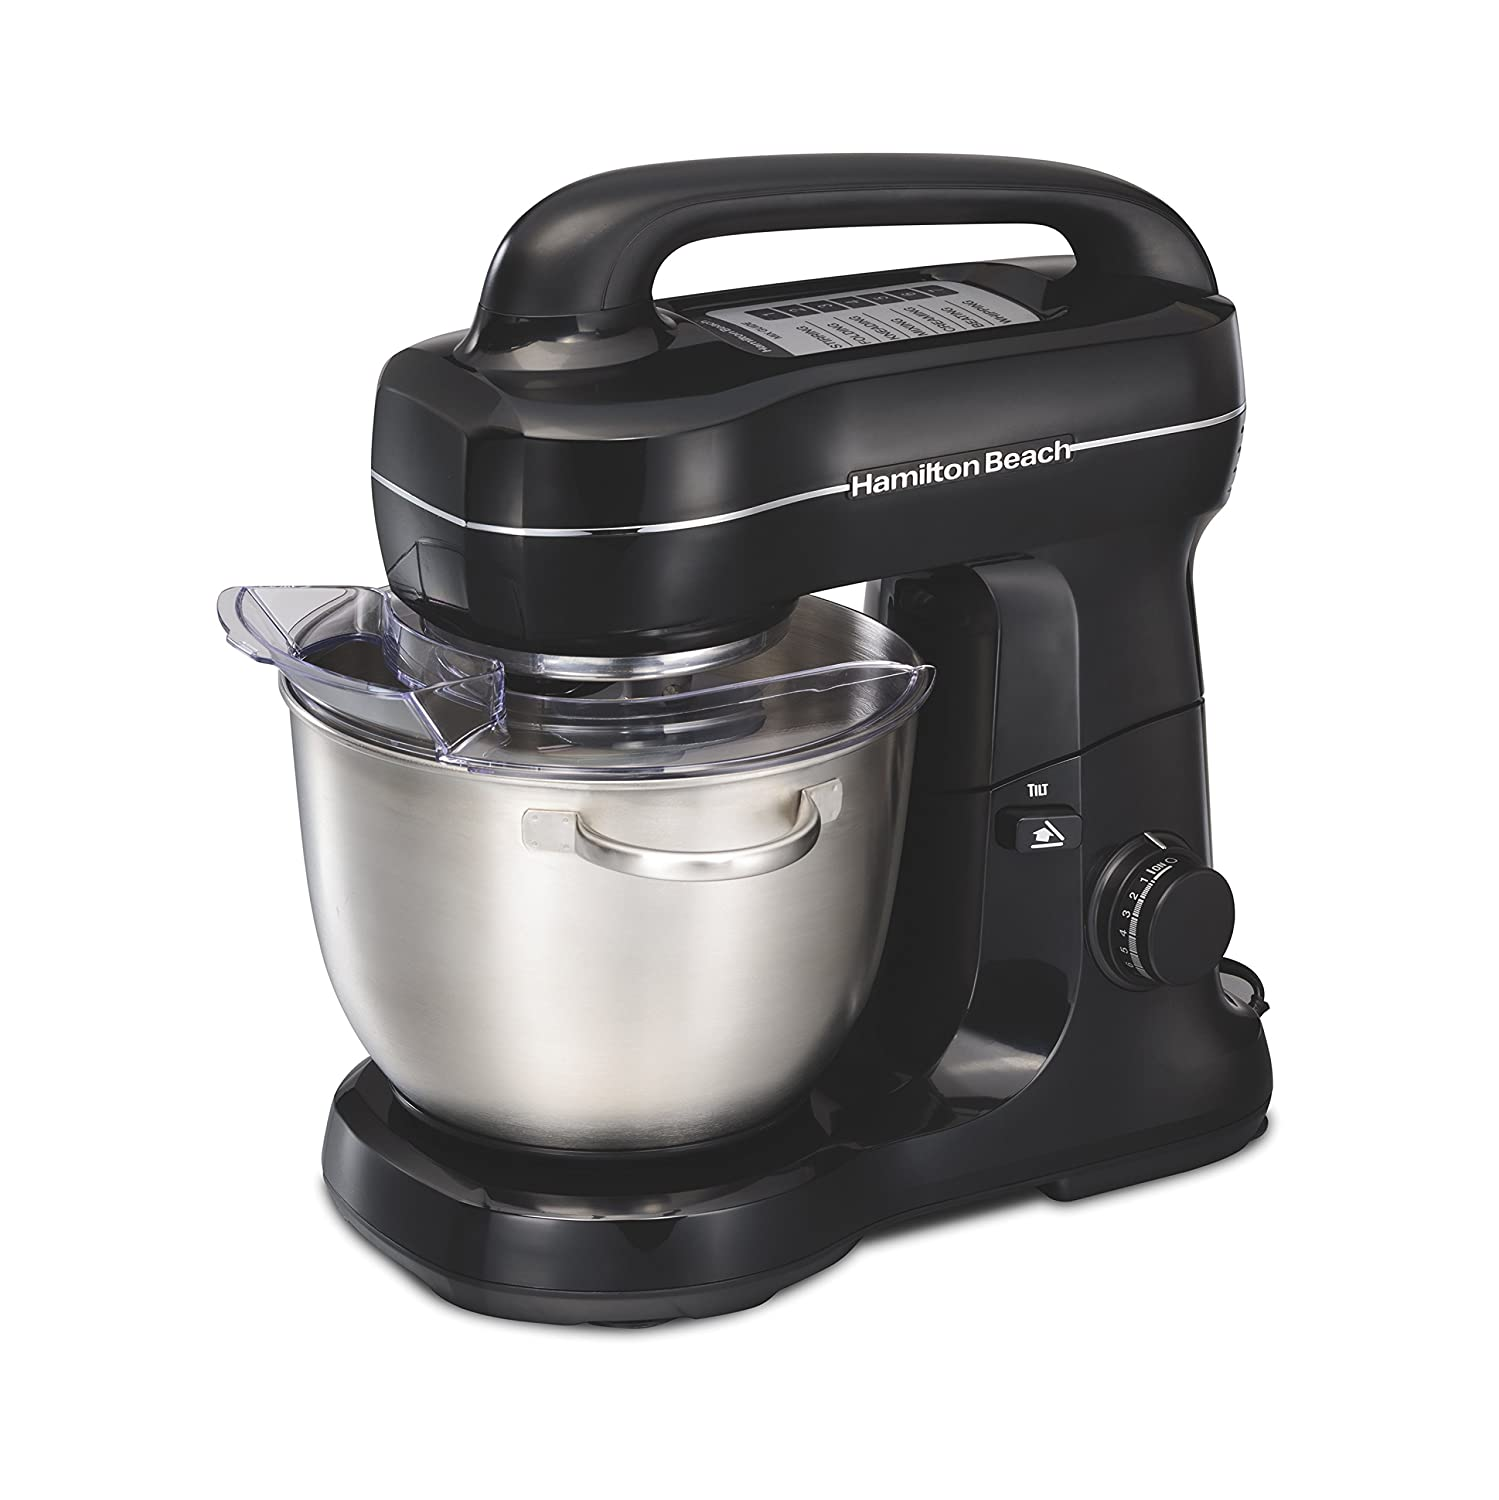 Hamilton Beach 63391 Stand Mixer 7 Speeds with Whisk, Dough Hook, Flat Beater Attachments, 4 Quart, Black